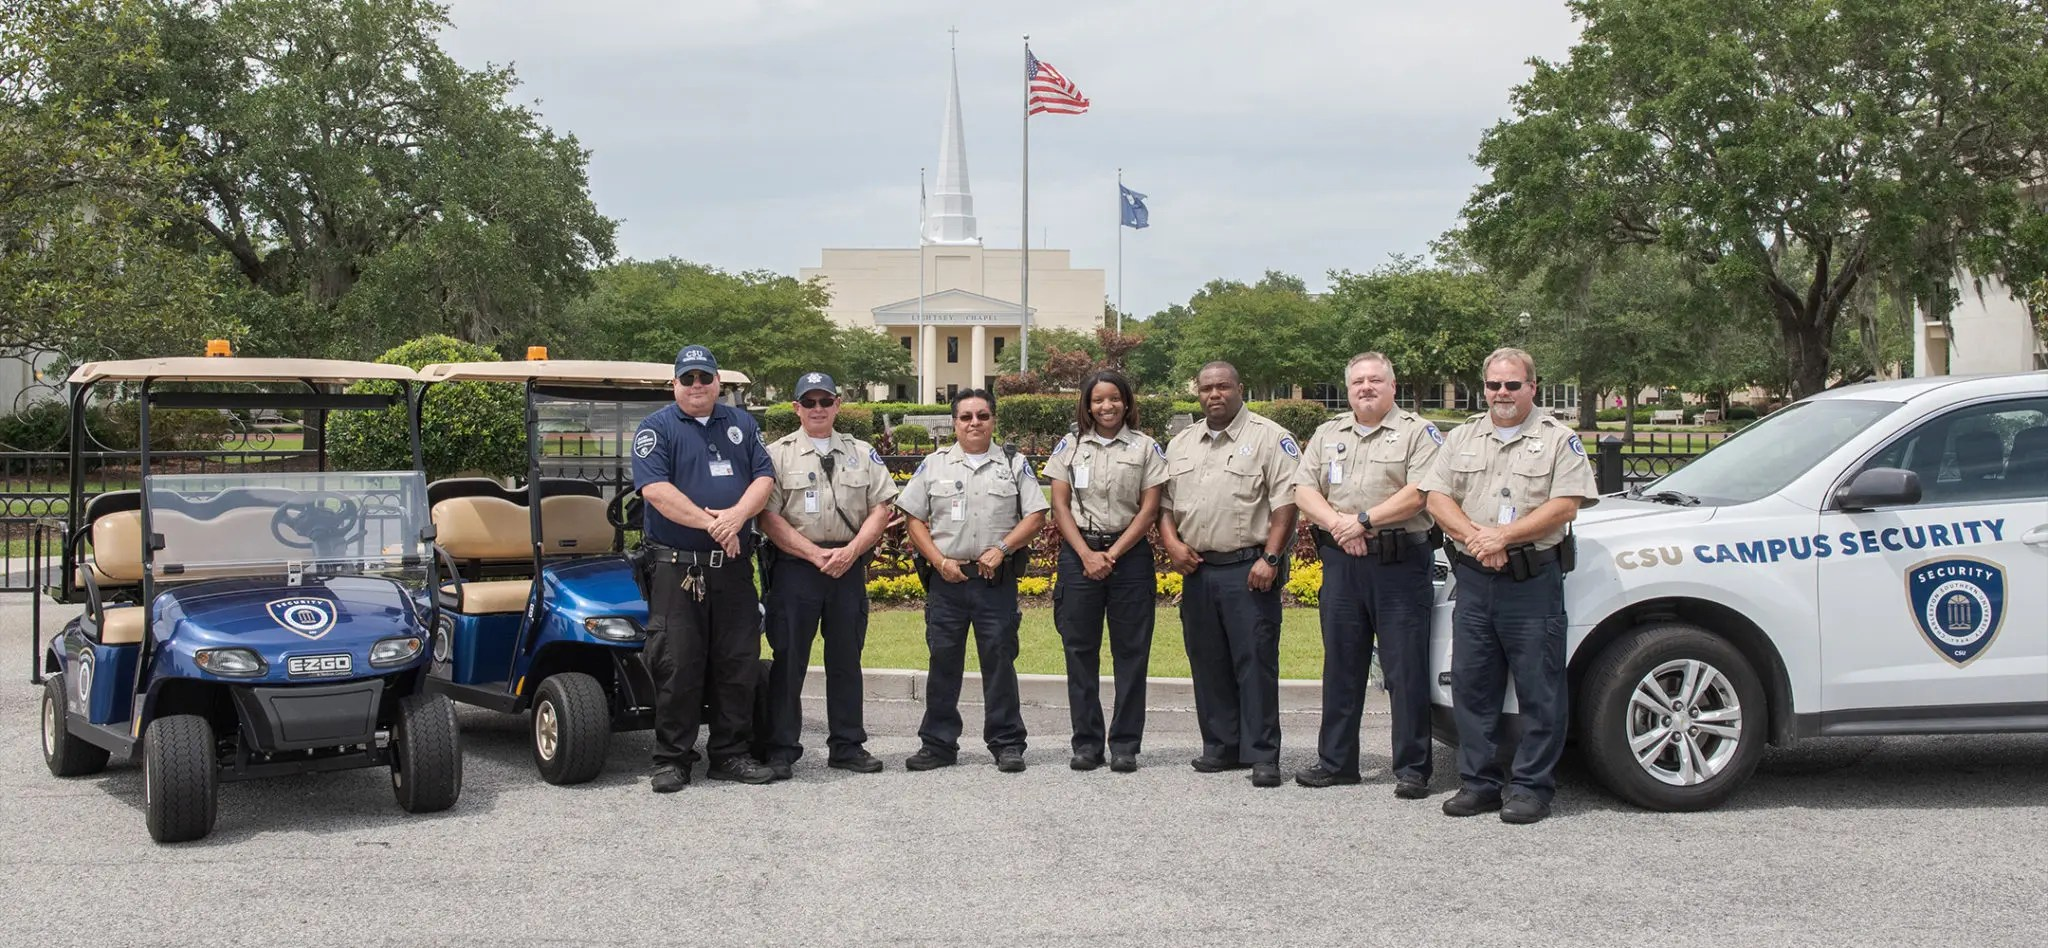 The CSU security team posing for the camera with a campus security vehicle and golf carts.